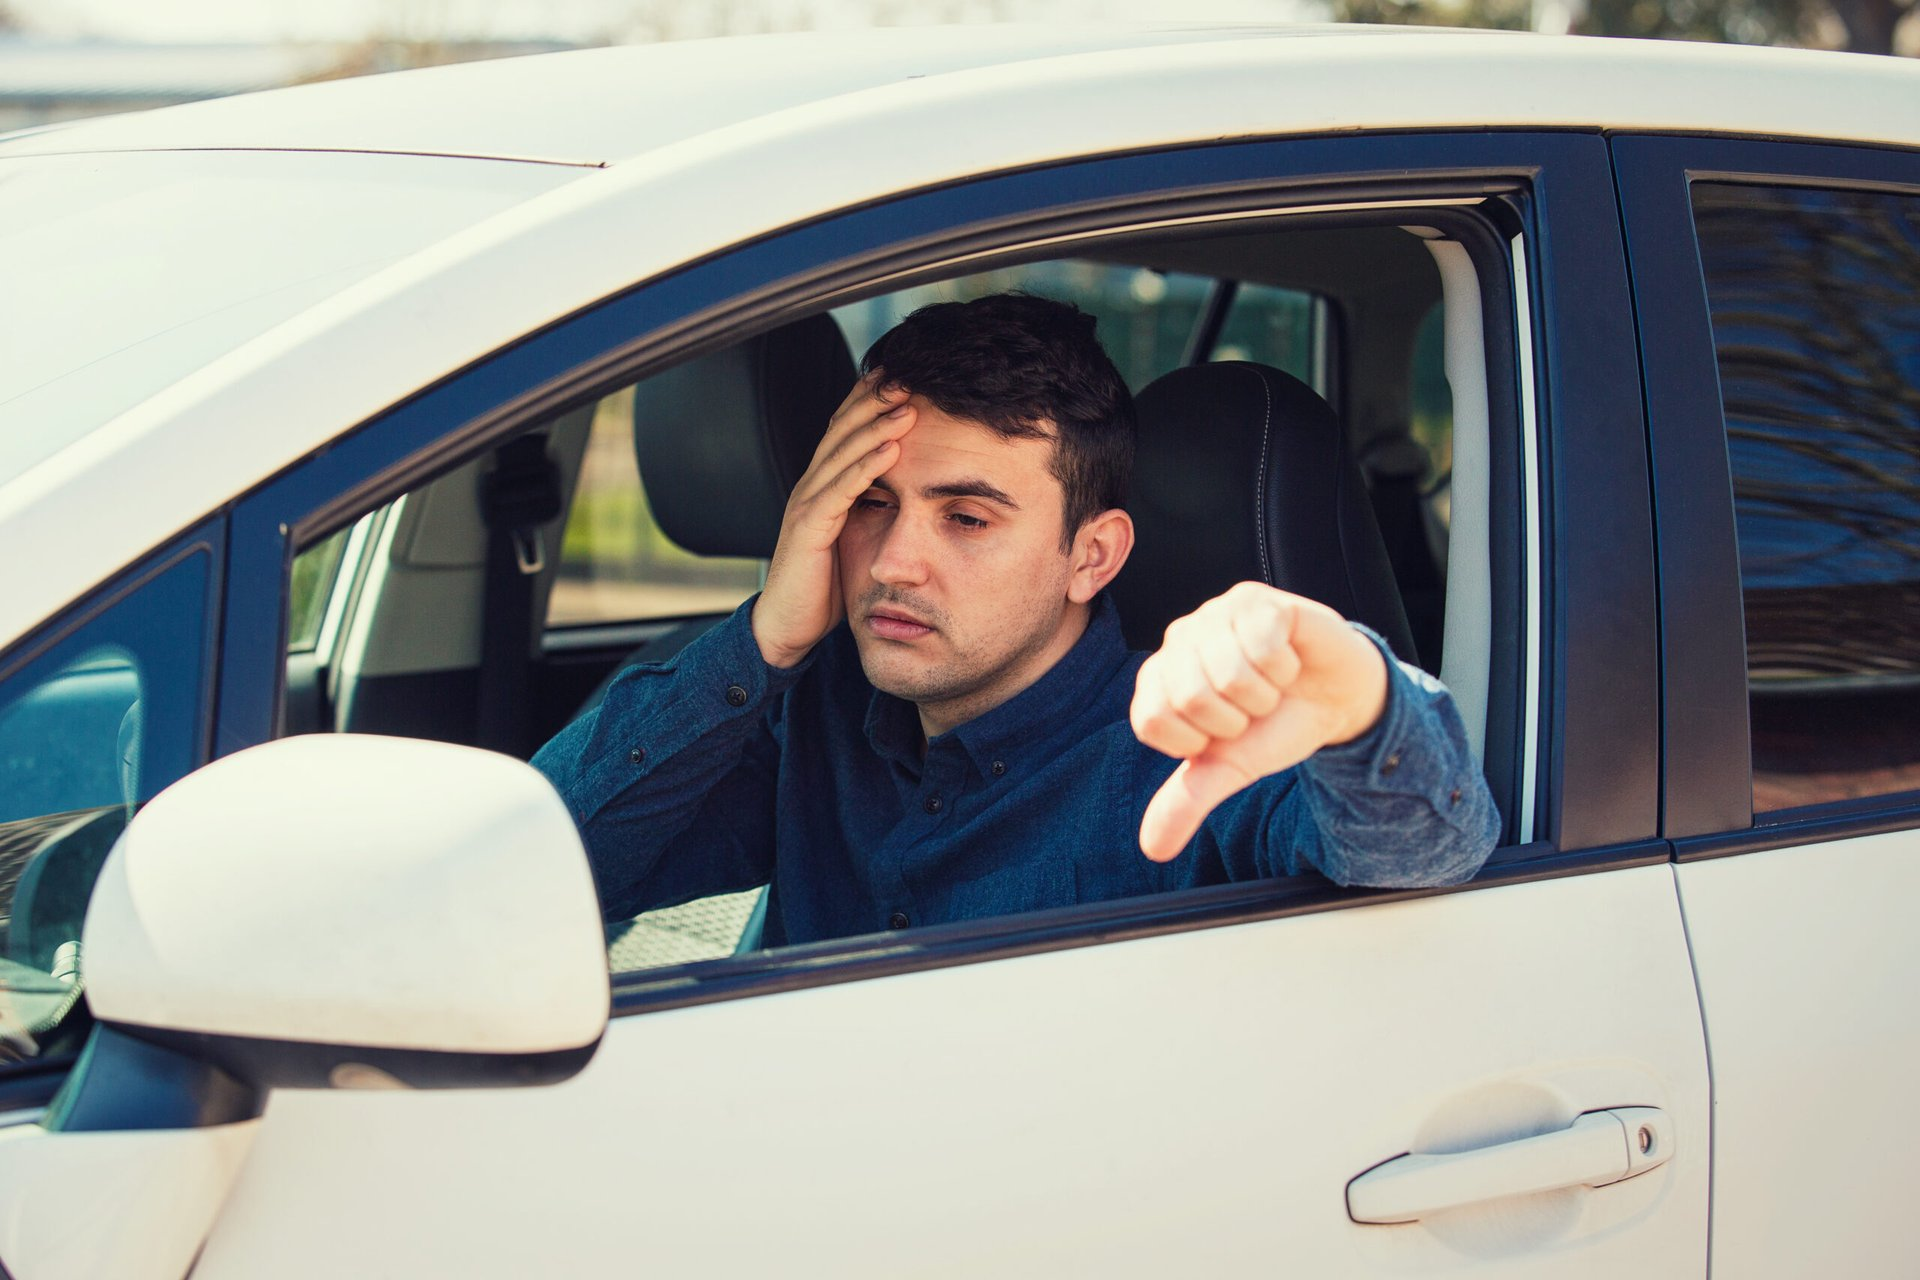 Unhappy driver with thumbs down